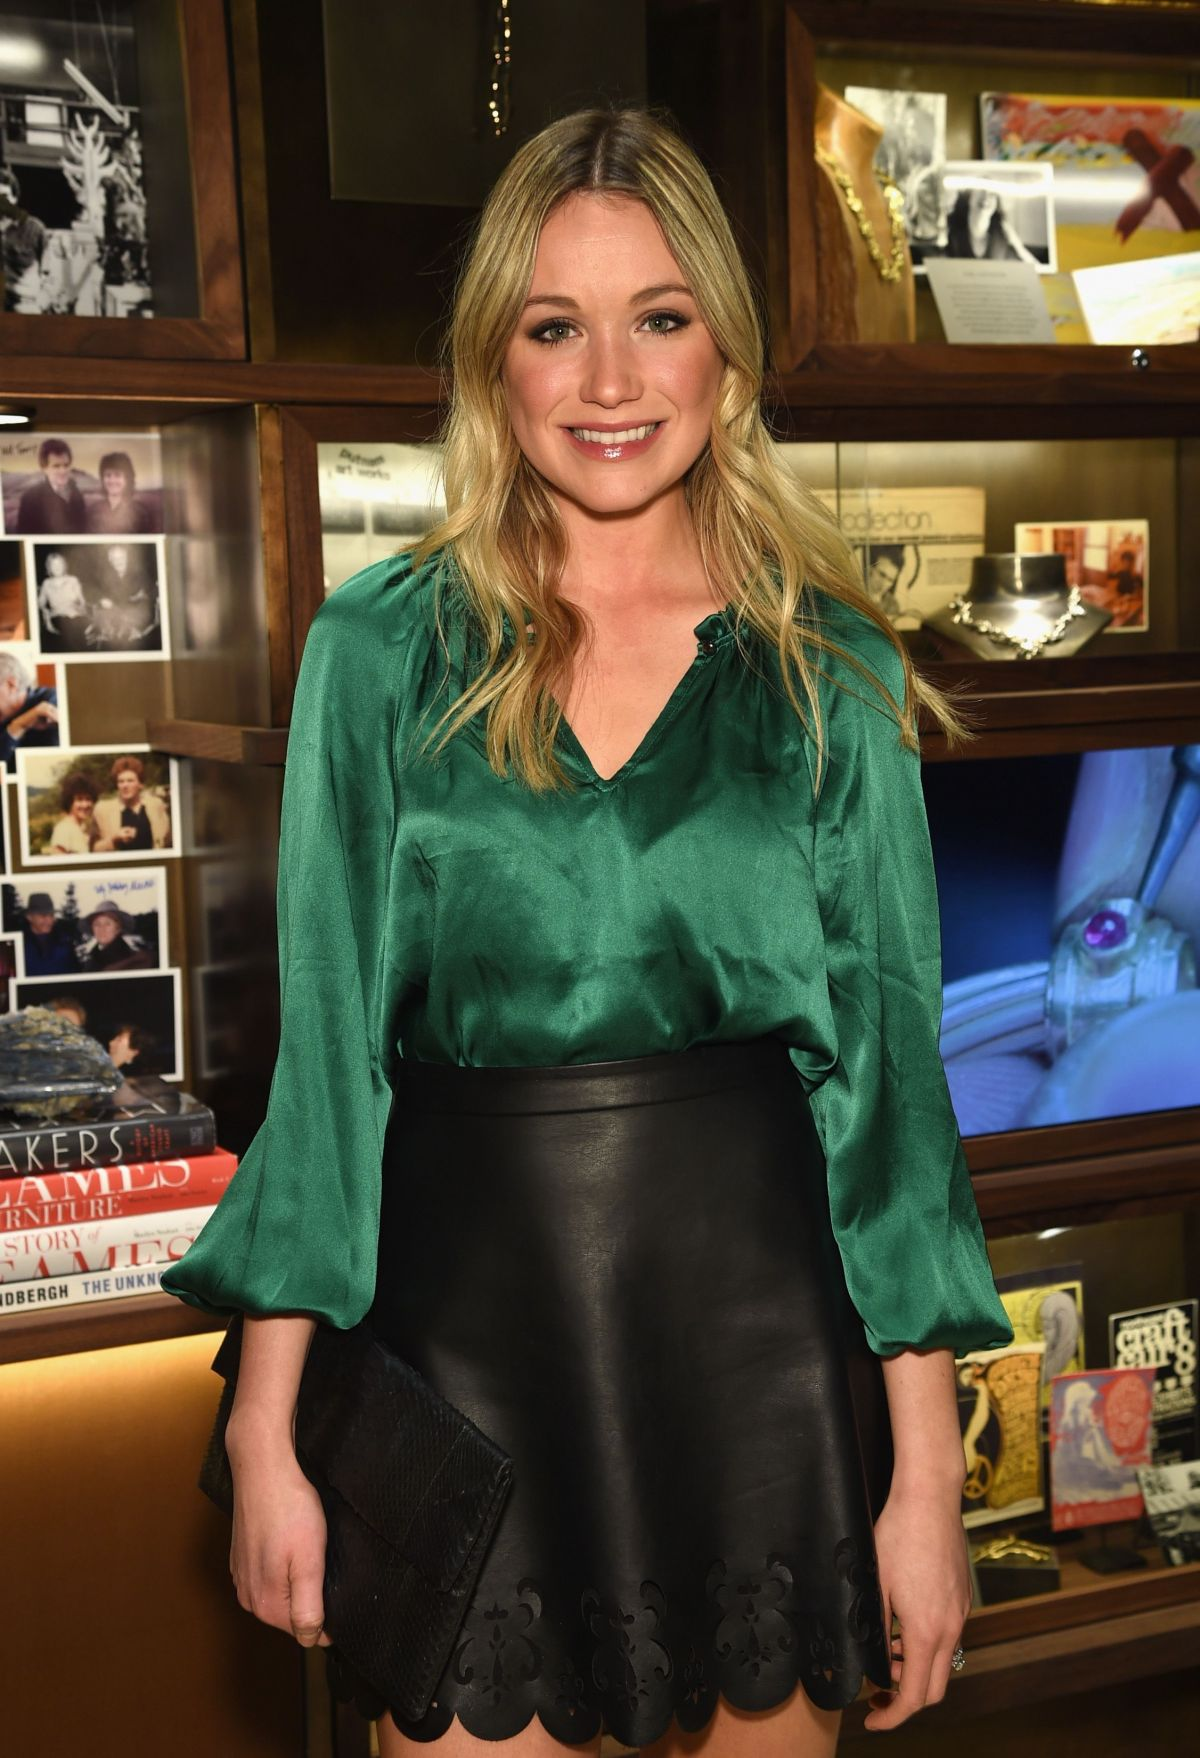 KATRINA BOWDEN at Favid Yurman Soho Boutique Opening Benefit Event in New York